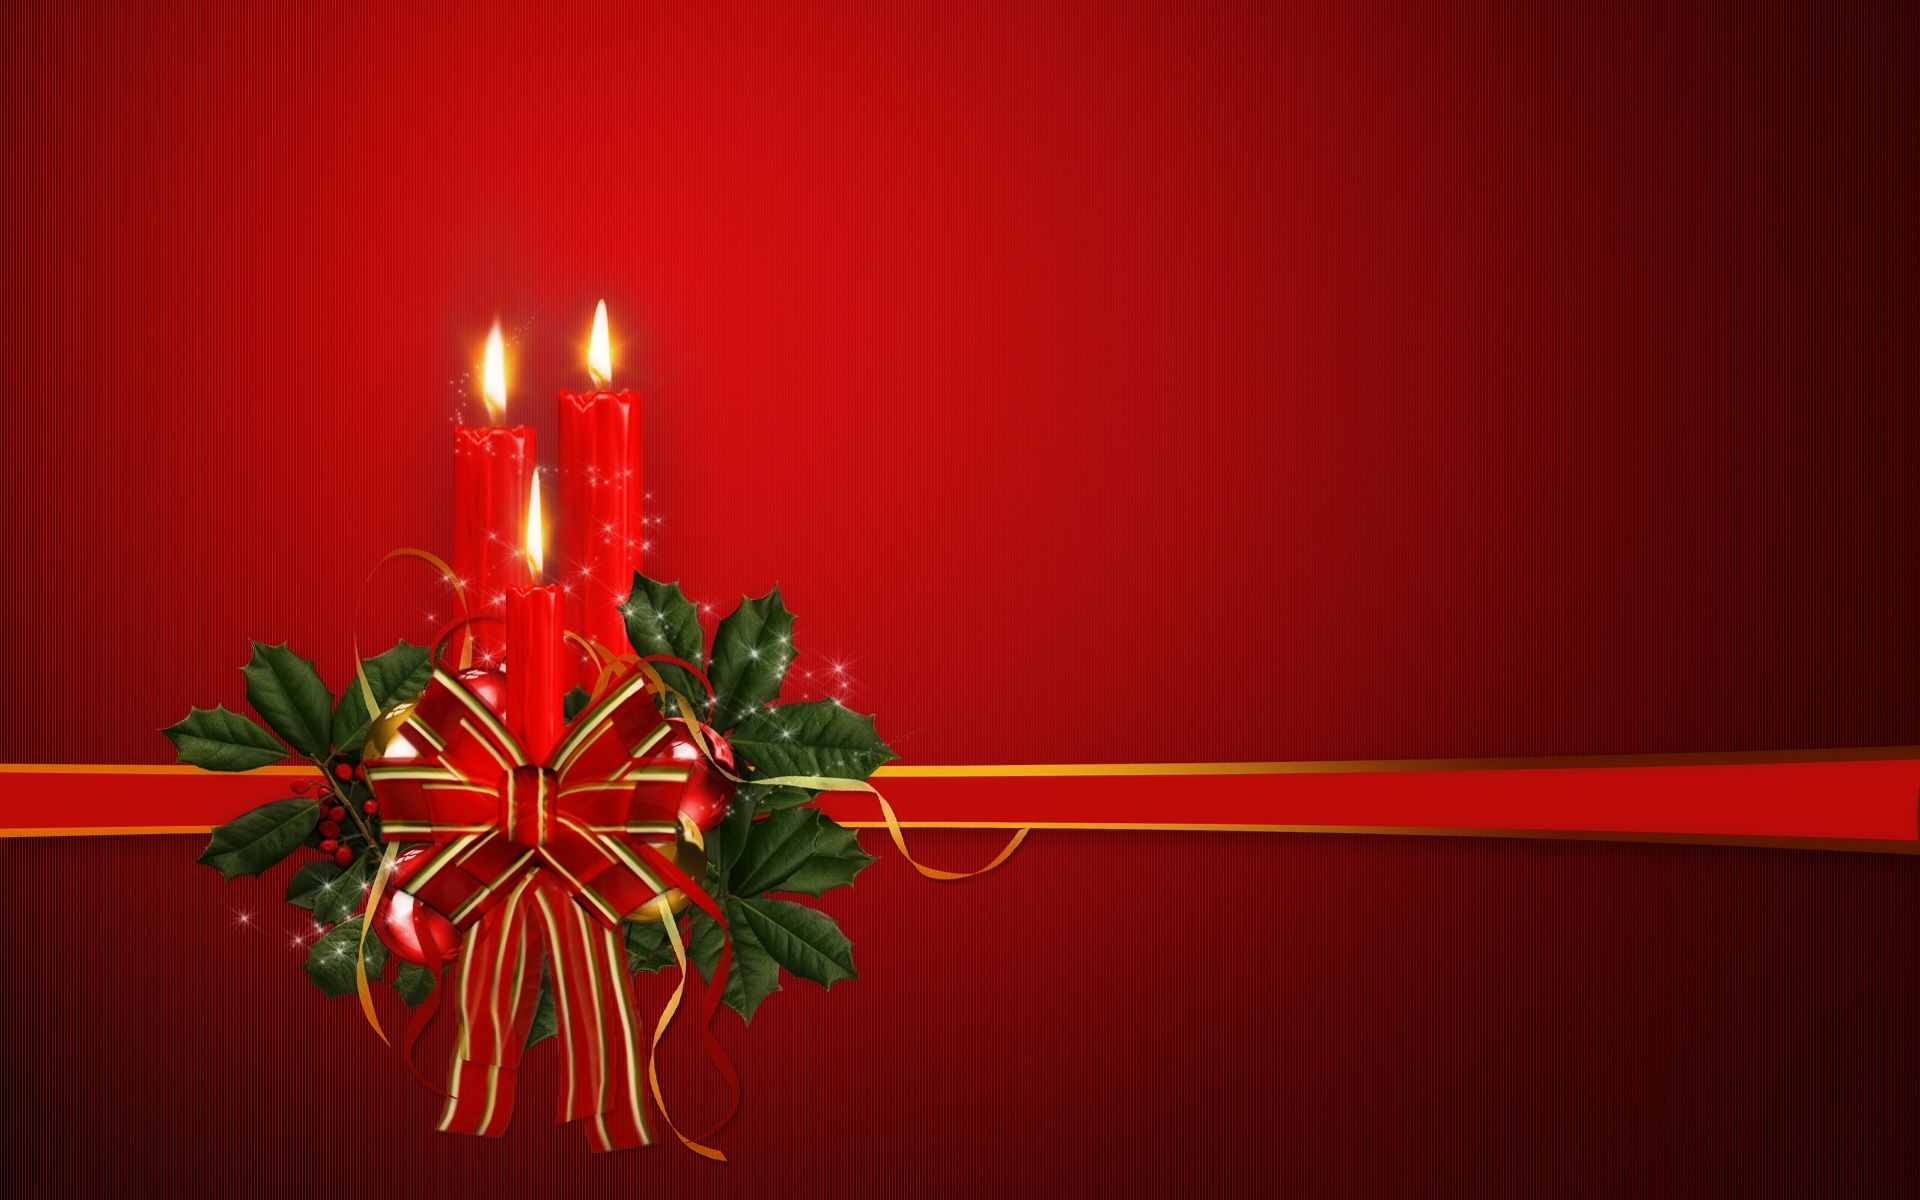 Christmas Candles Wallpaper Christian Wallpapers And